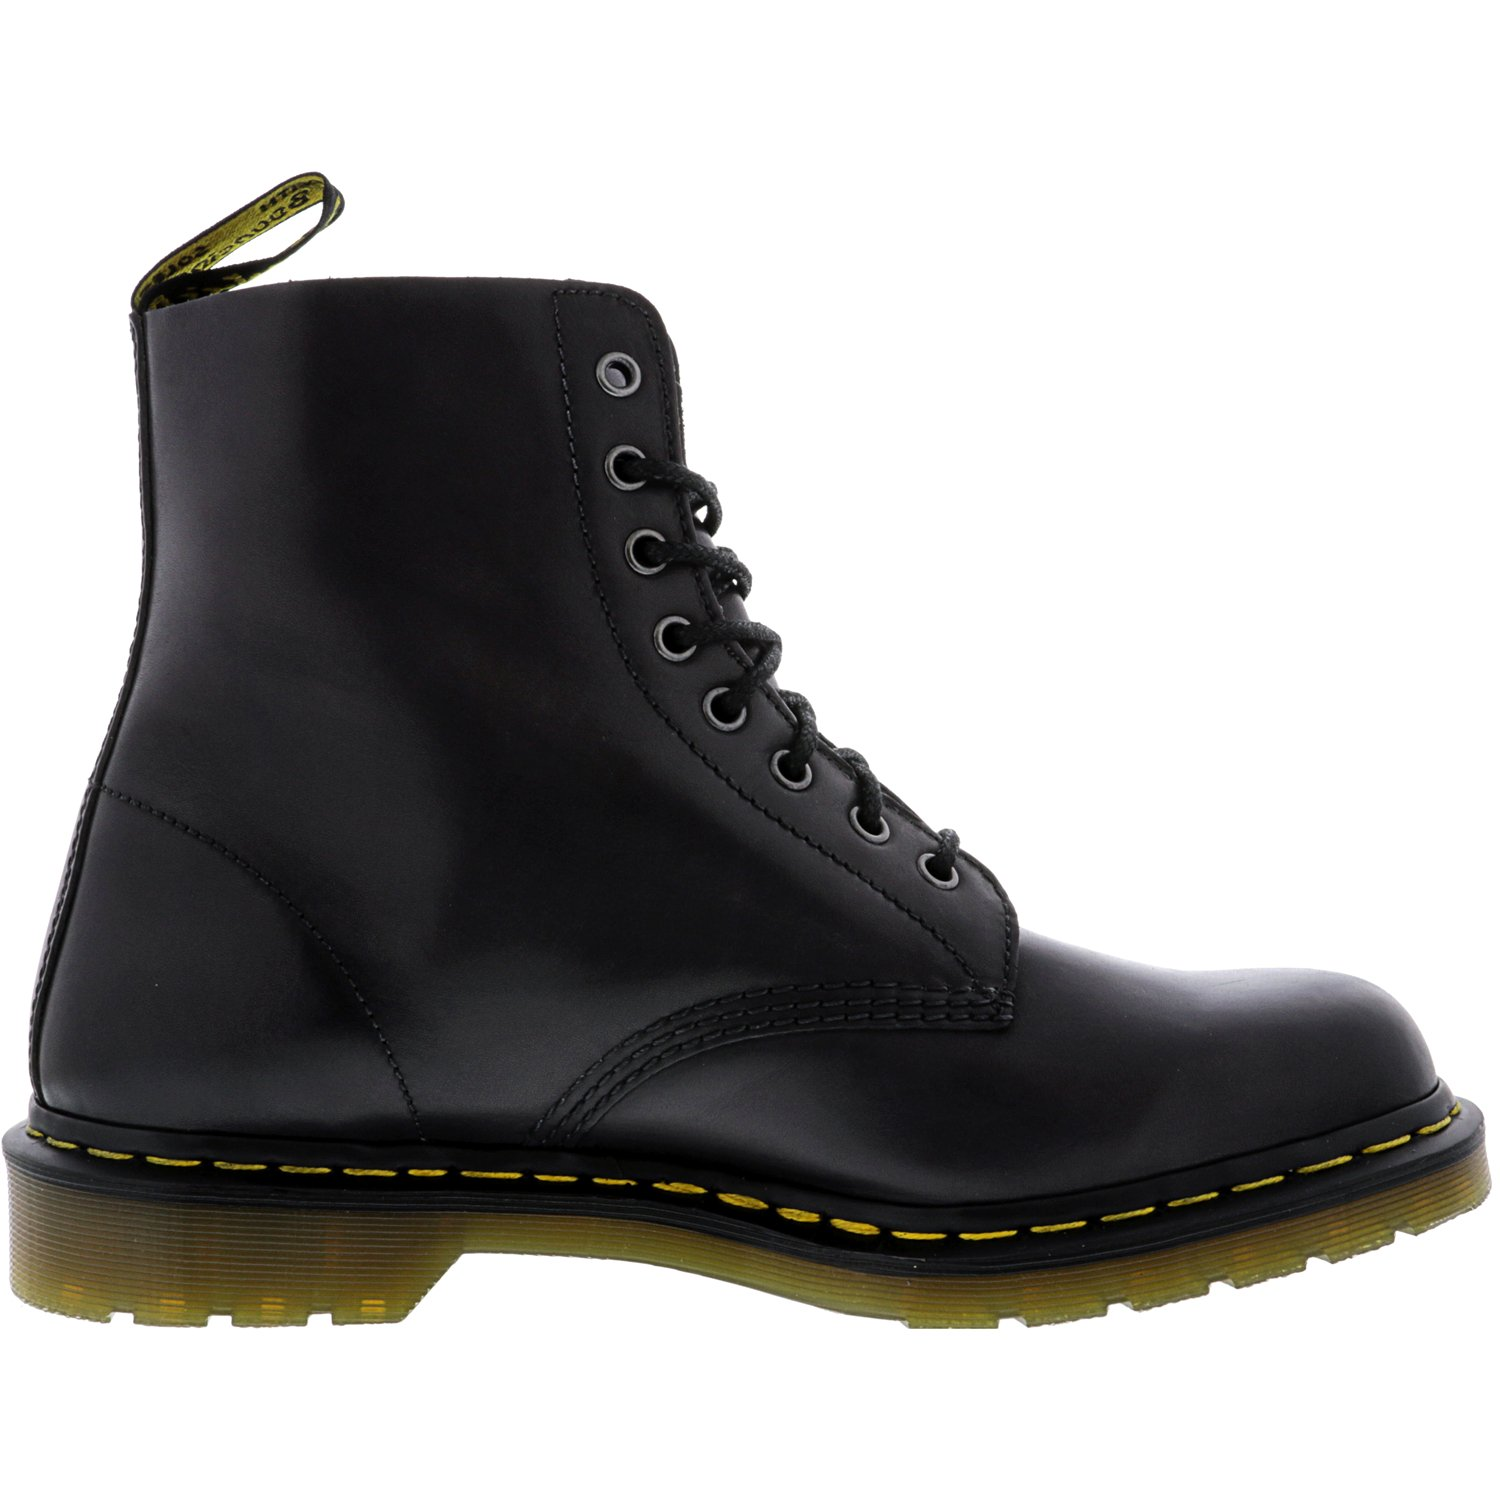 Dr. Martens Pascal Antique Temperley Charcoal High-Top Leather Boot - 11M / 10M